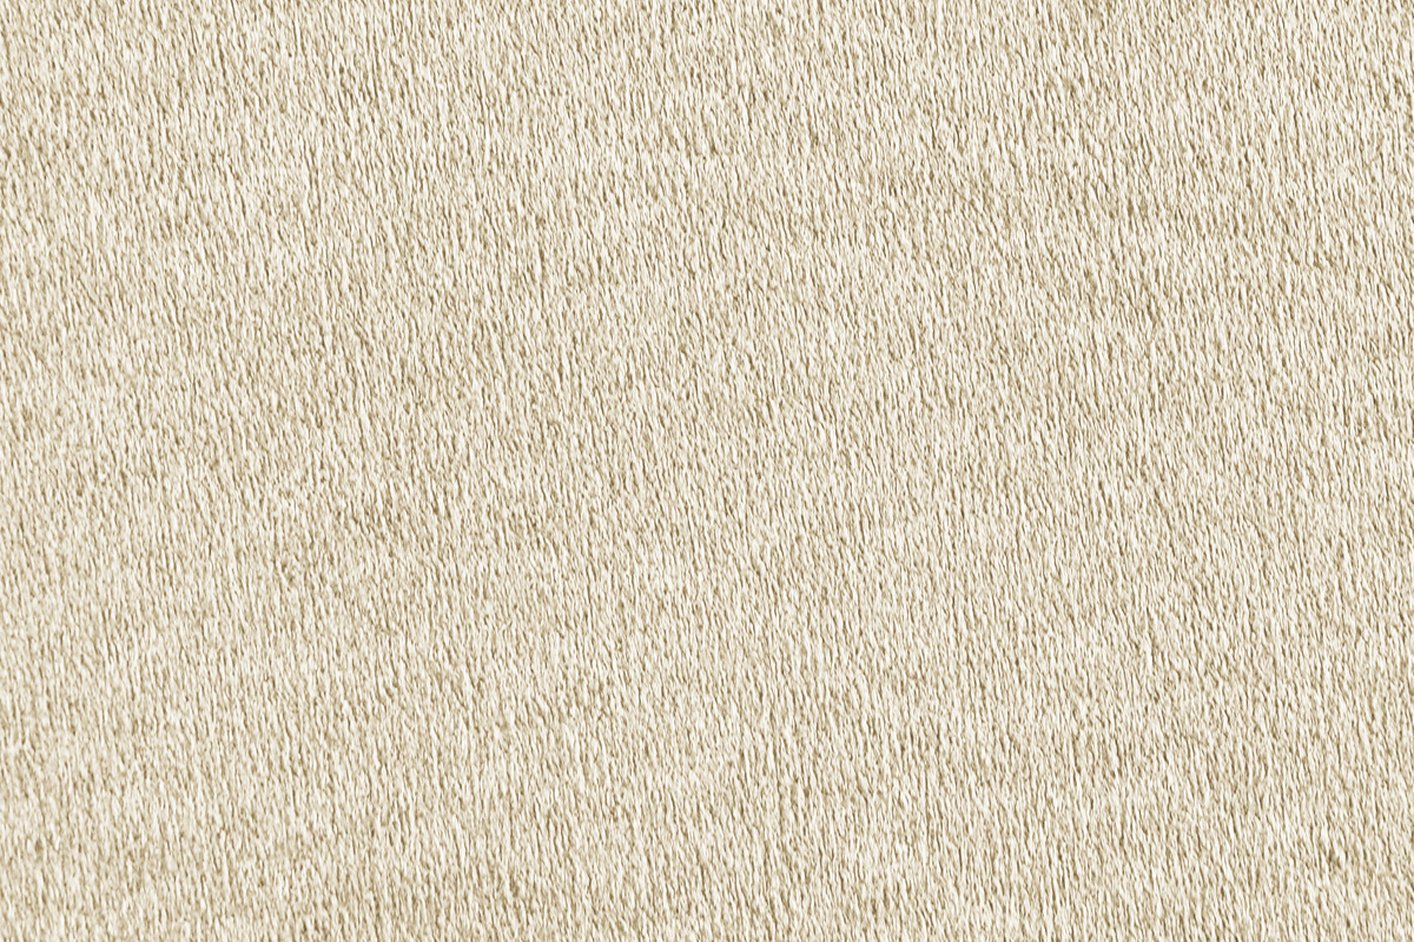 Material Sofa Upholstery Fabric Plain Soft Linen Look  : beige fabric sofa 160 from thesofa.droogkast.com size 1414 x 942 jpeg 457kB